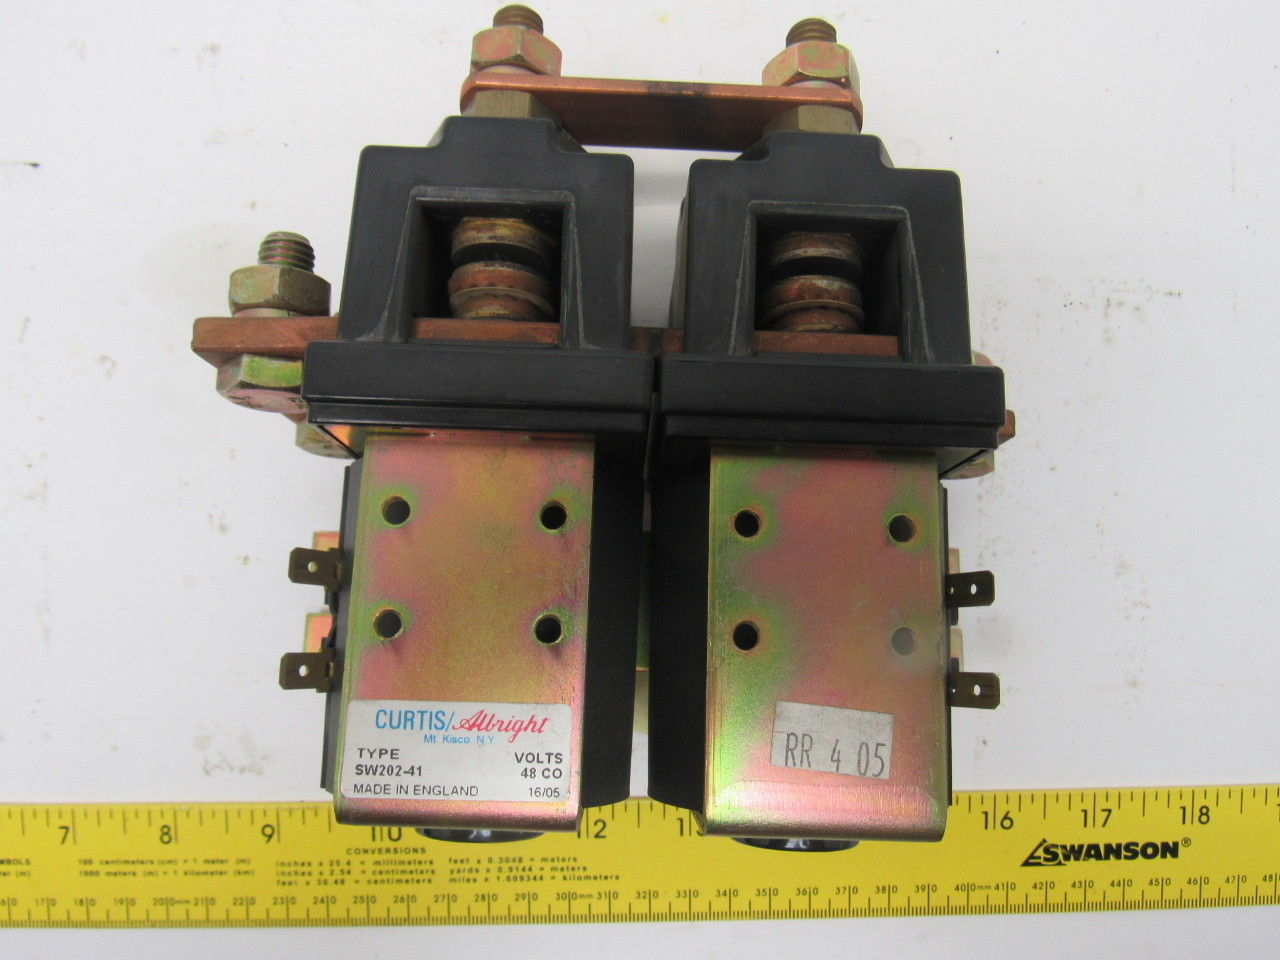 Curtis Albright Sw202 41 Electric Vehicle Dc Contactor